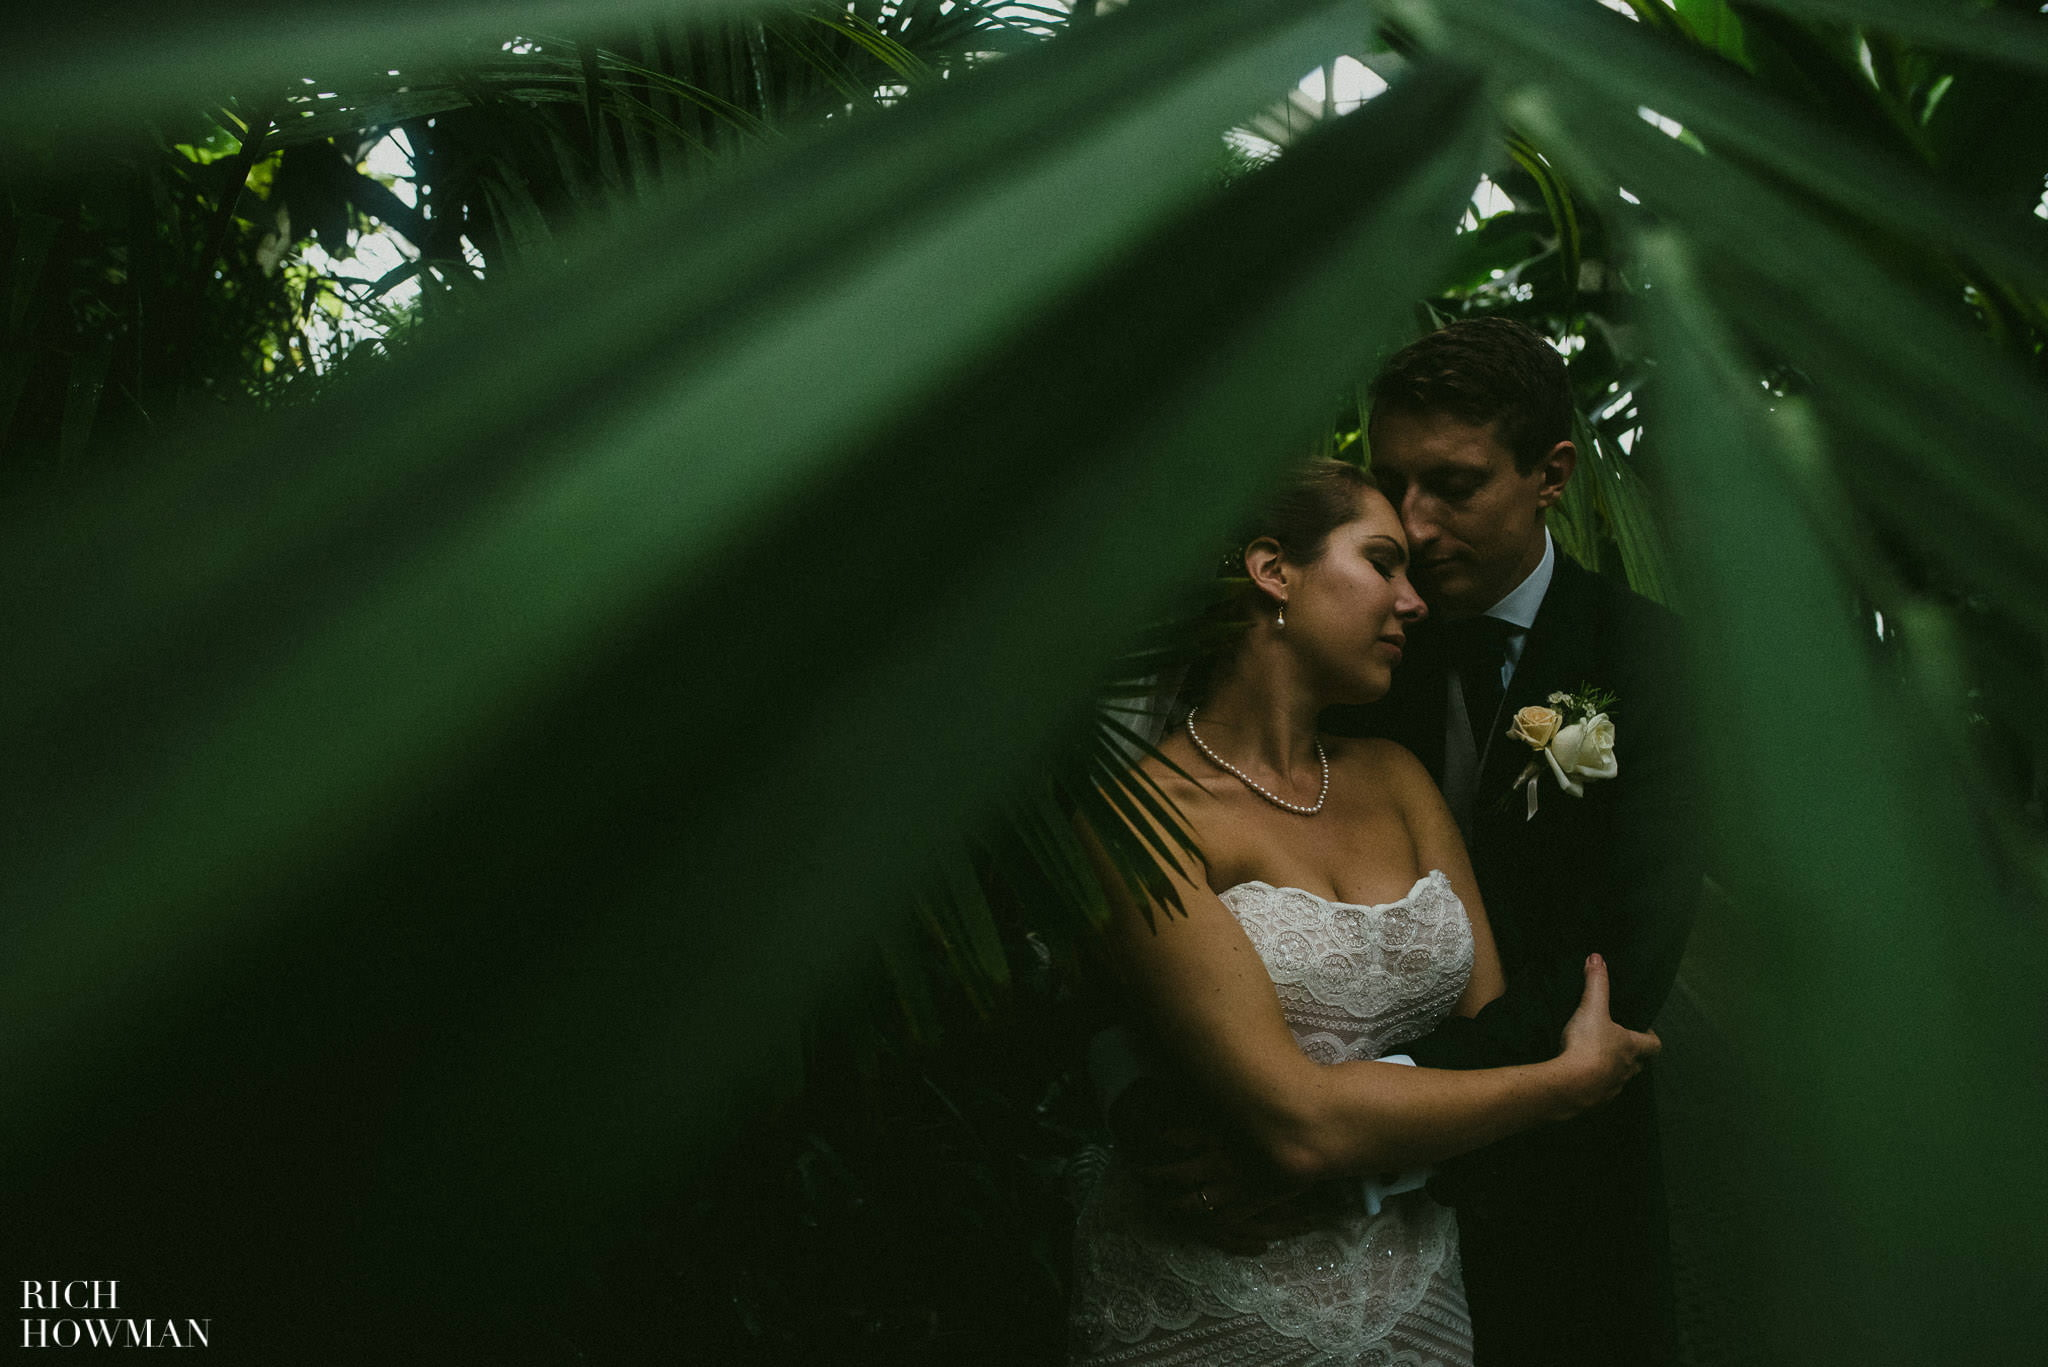 Sneaking a photo through the palm leaves